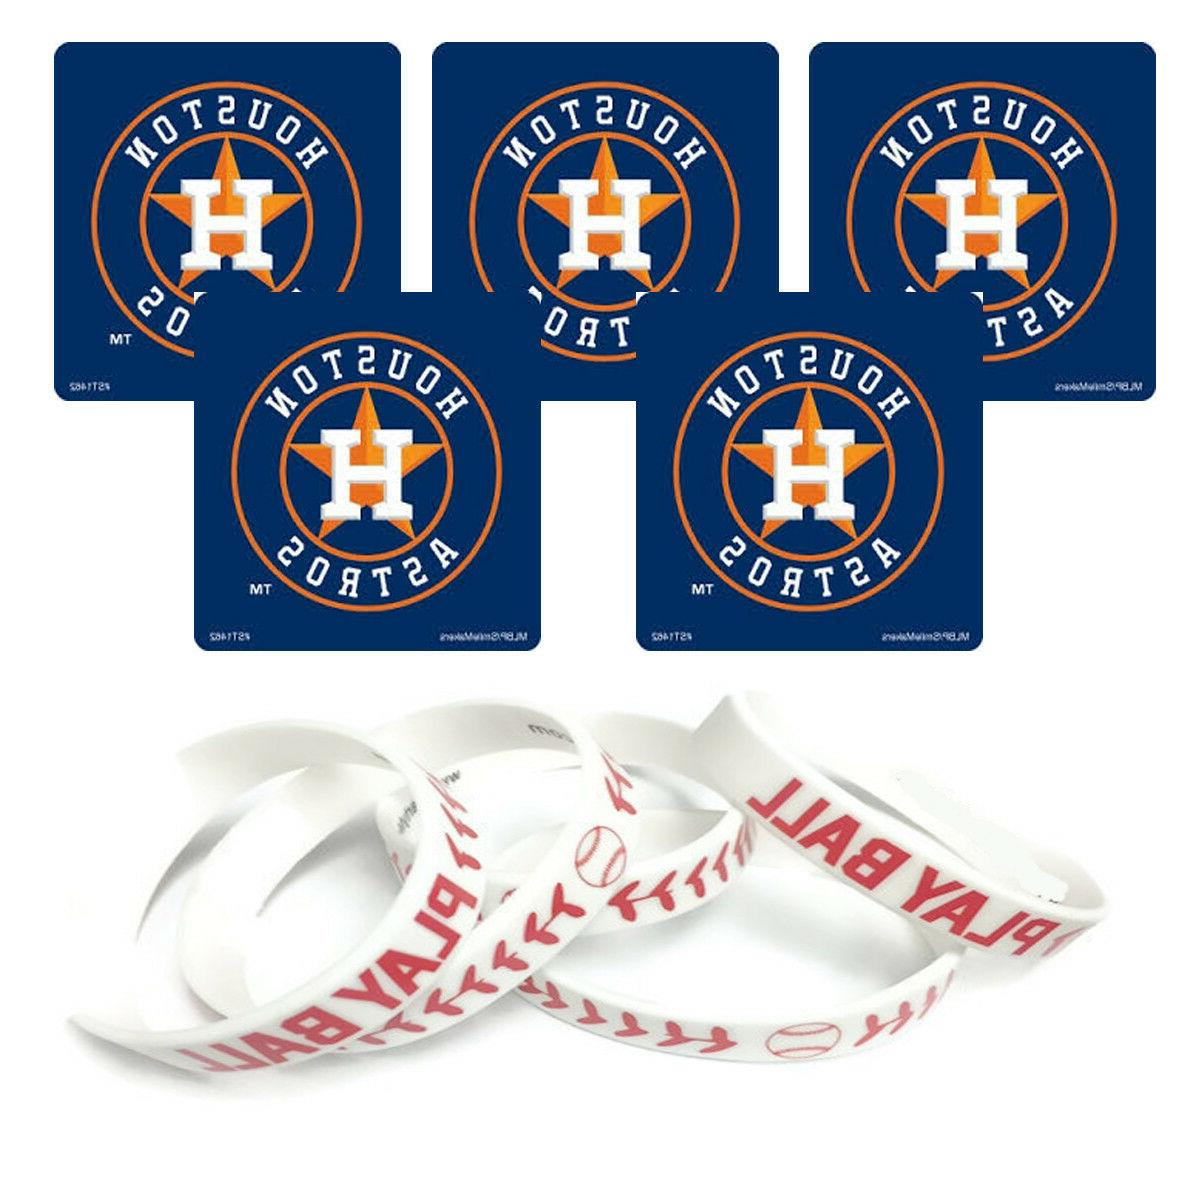 24 mlb stickers and 12 youth baseball